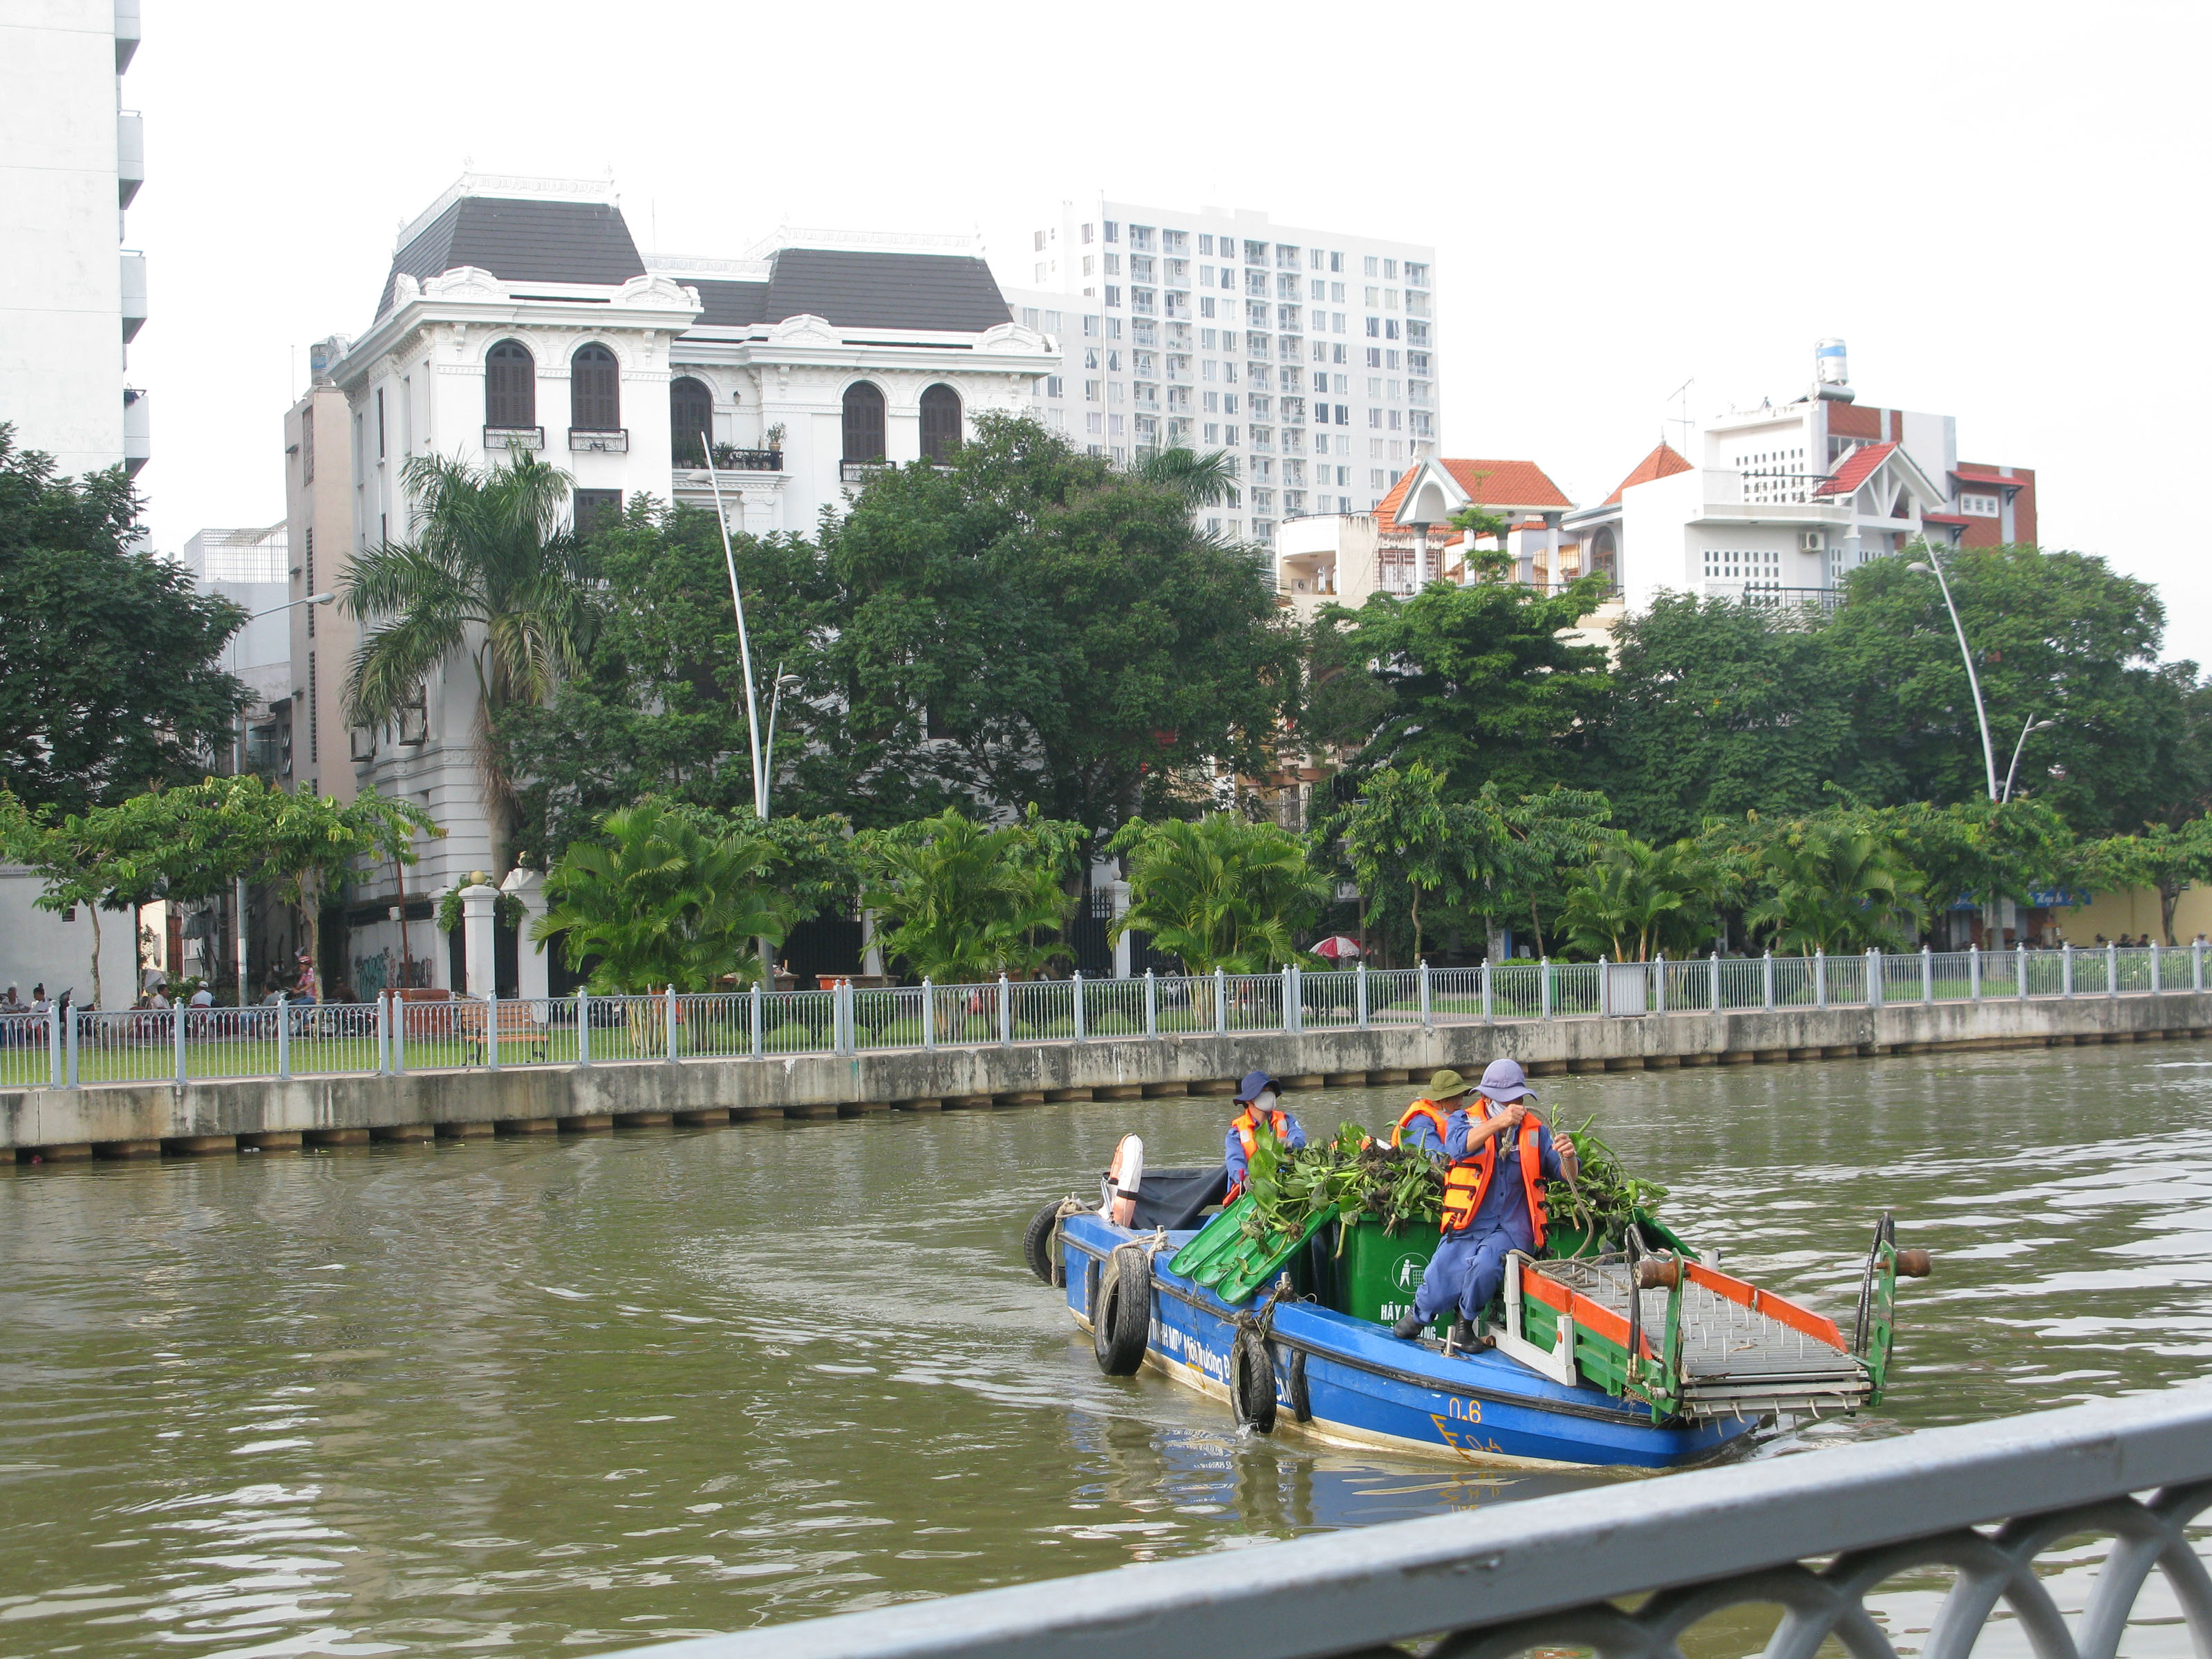 The resurrection of Nhieu Loc-Thi Nghe: How HCMC brought the black water canal back from the dead